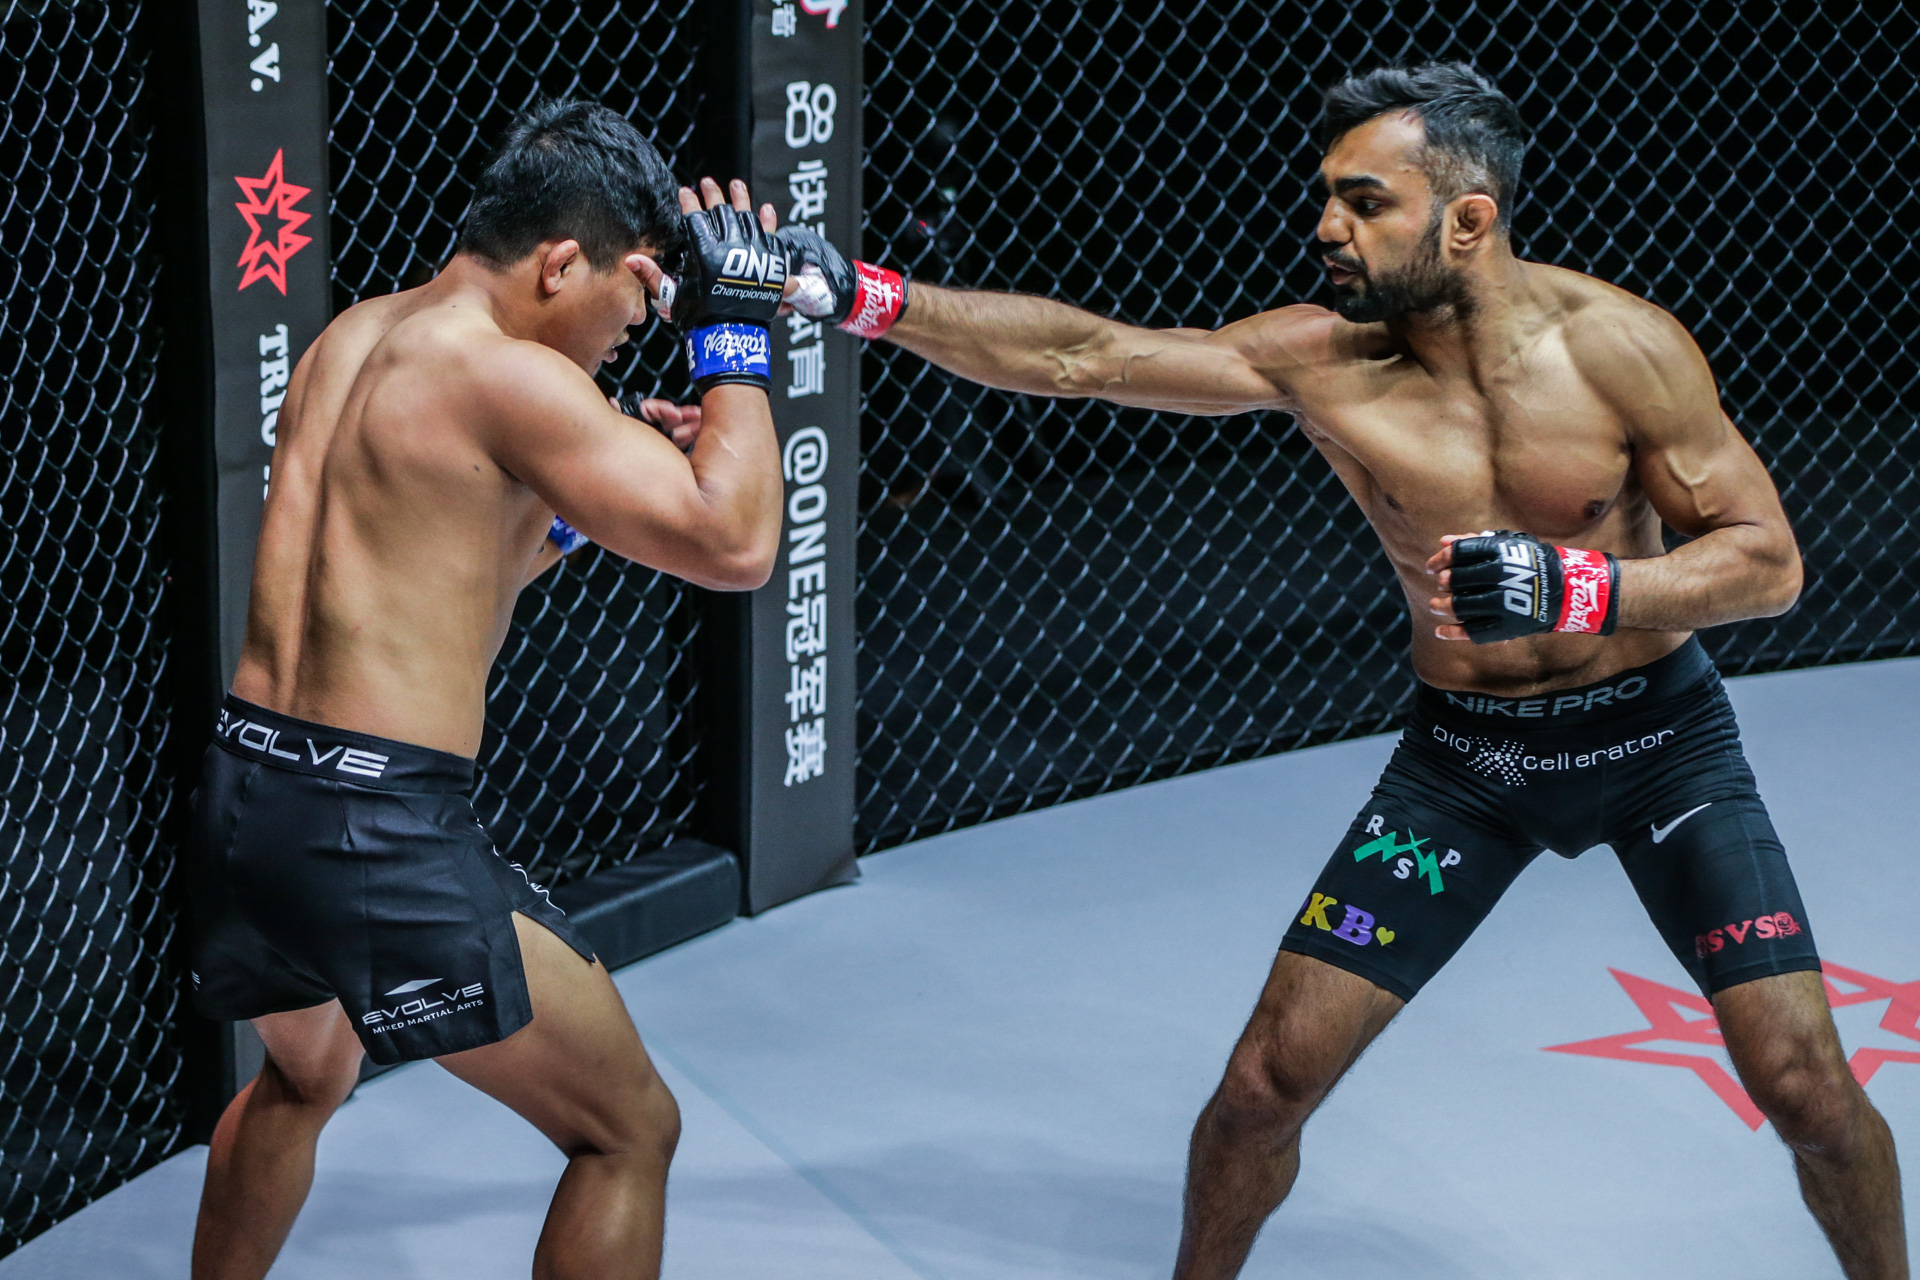 Scenes from the all-Indian clash between Gurdarshan Mangat and Roshan Mainam at ONE: DANGAL on 15 May